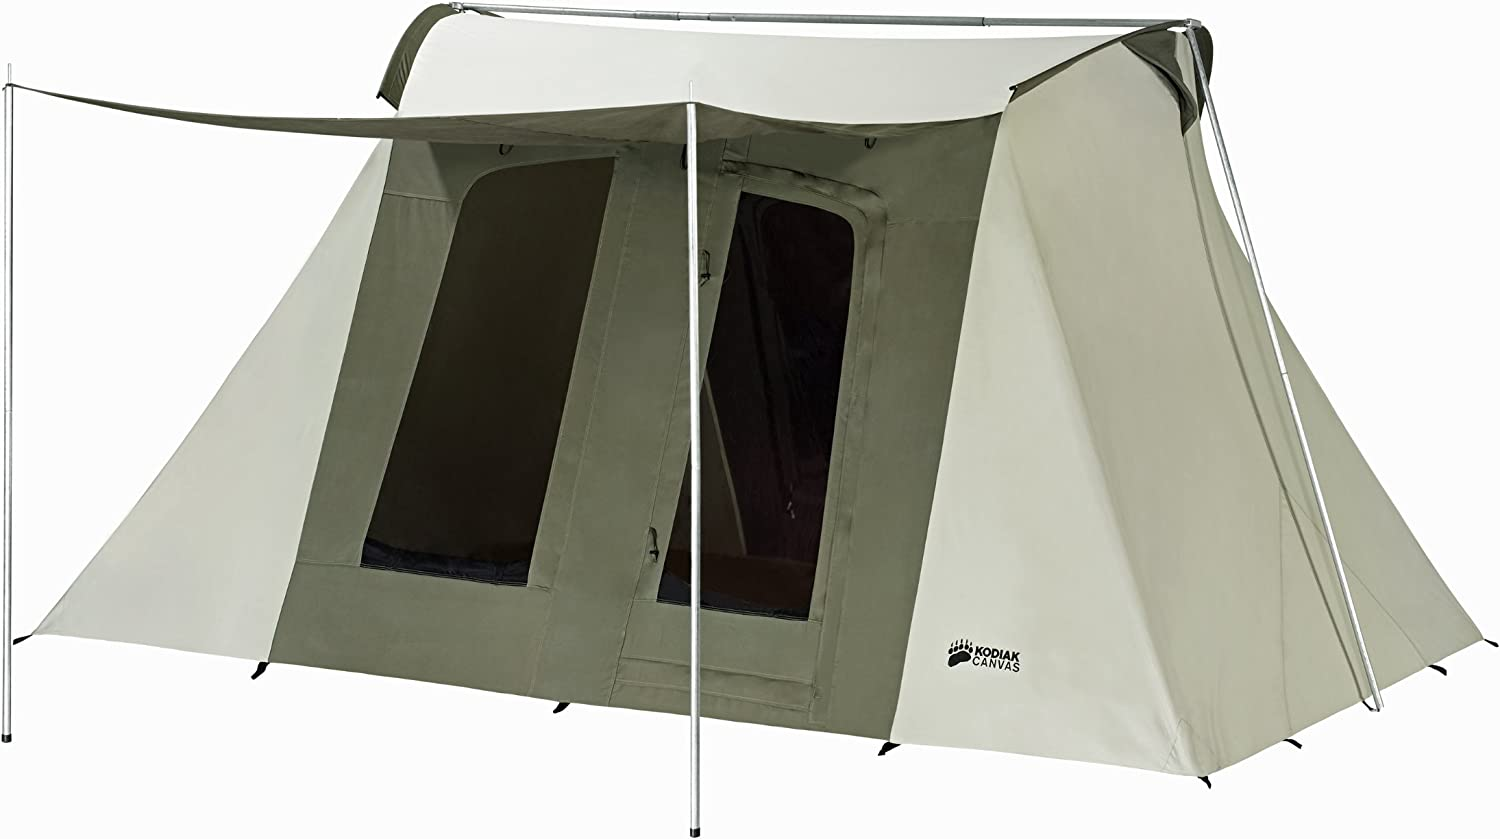 Kodiak Canvas Flex-Bow Deluxe 8 man tent